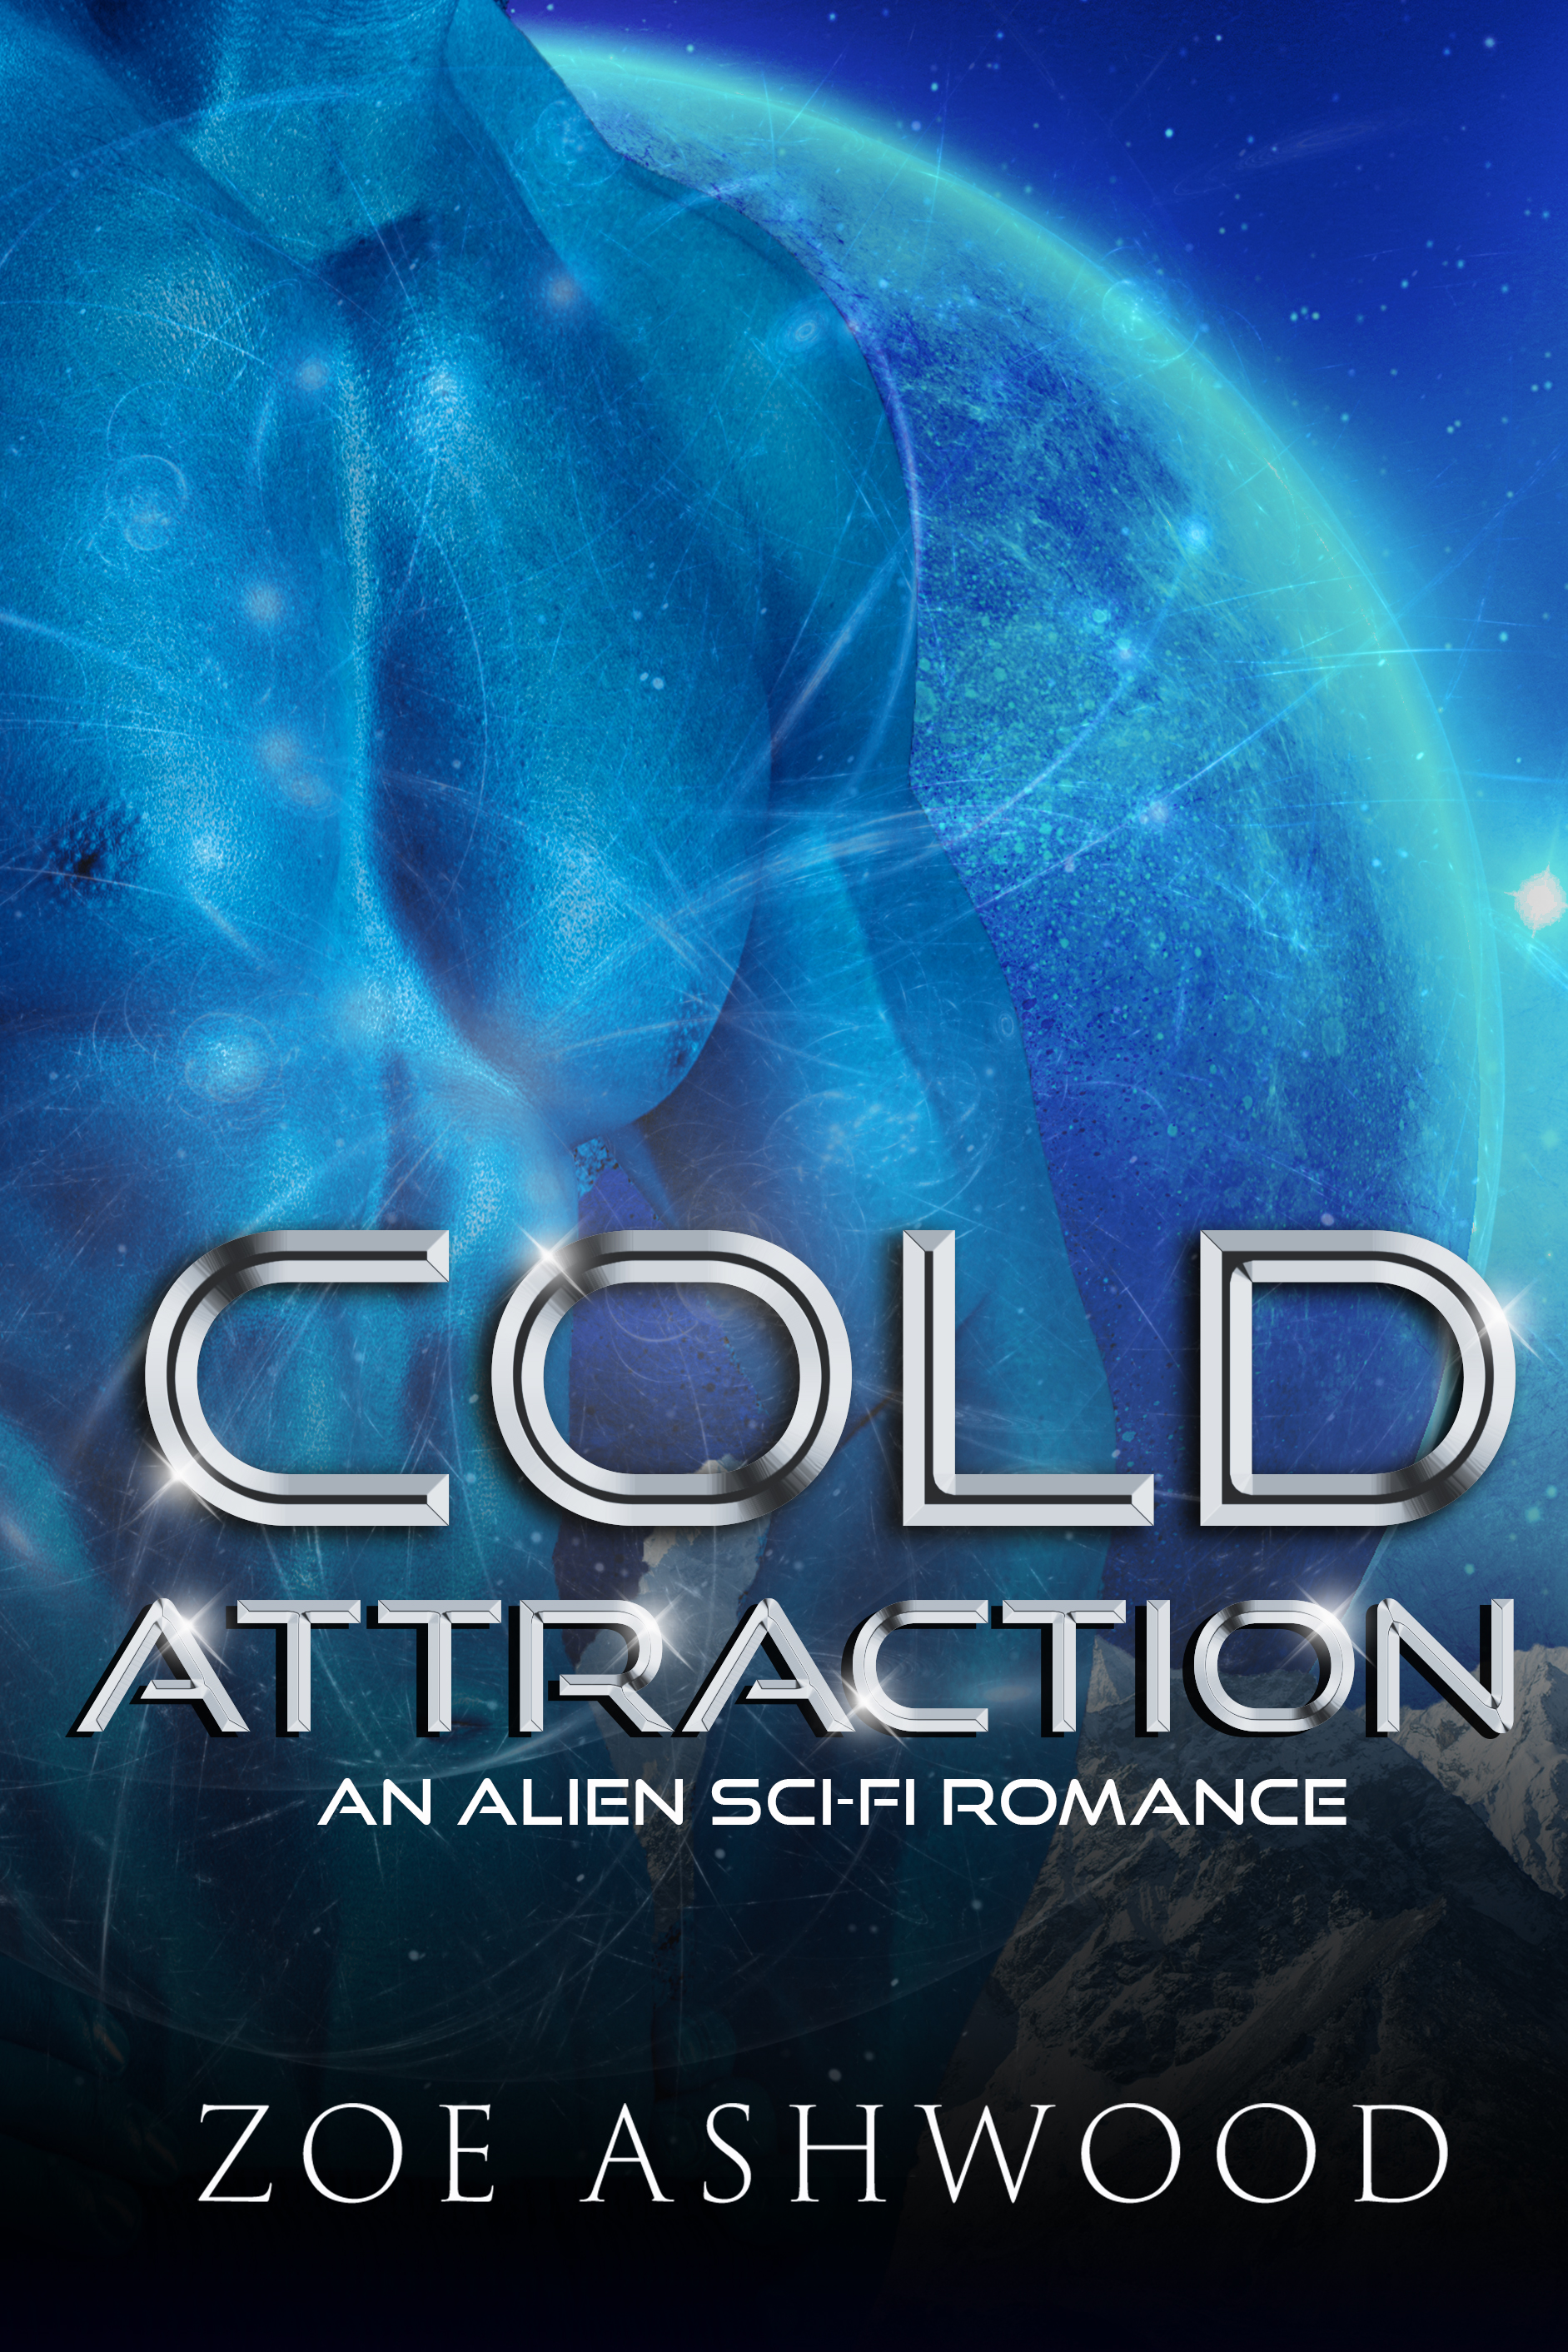 Cold Attraction by Zoe Ashwood